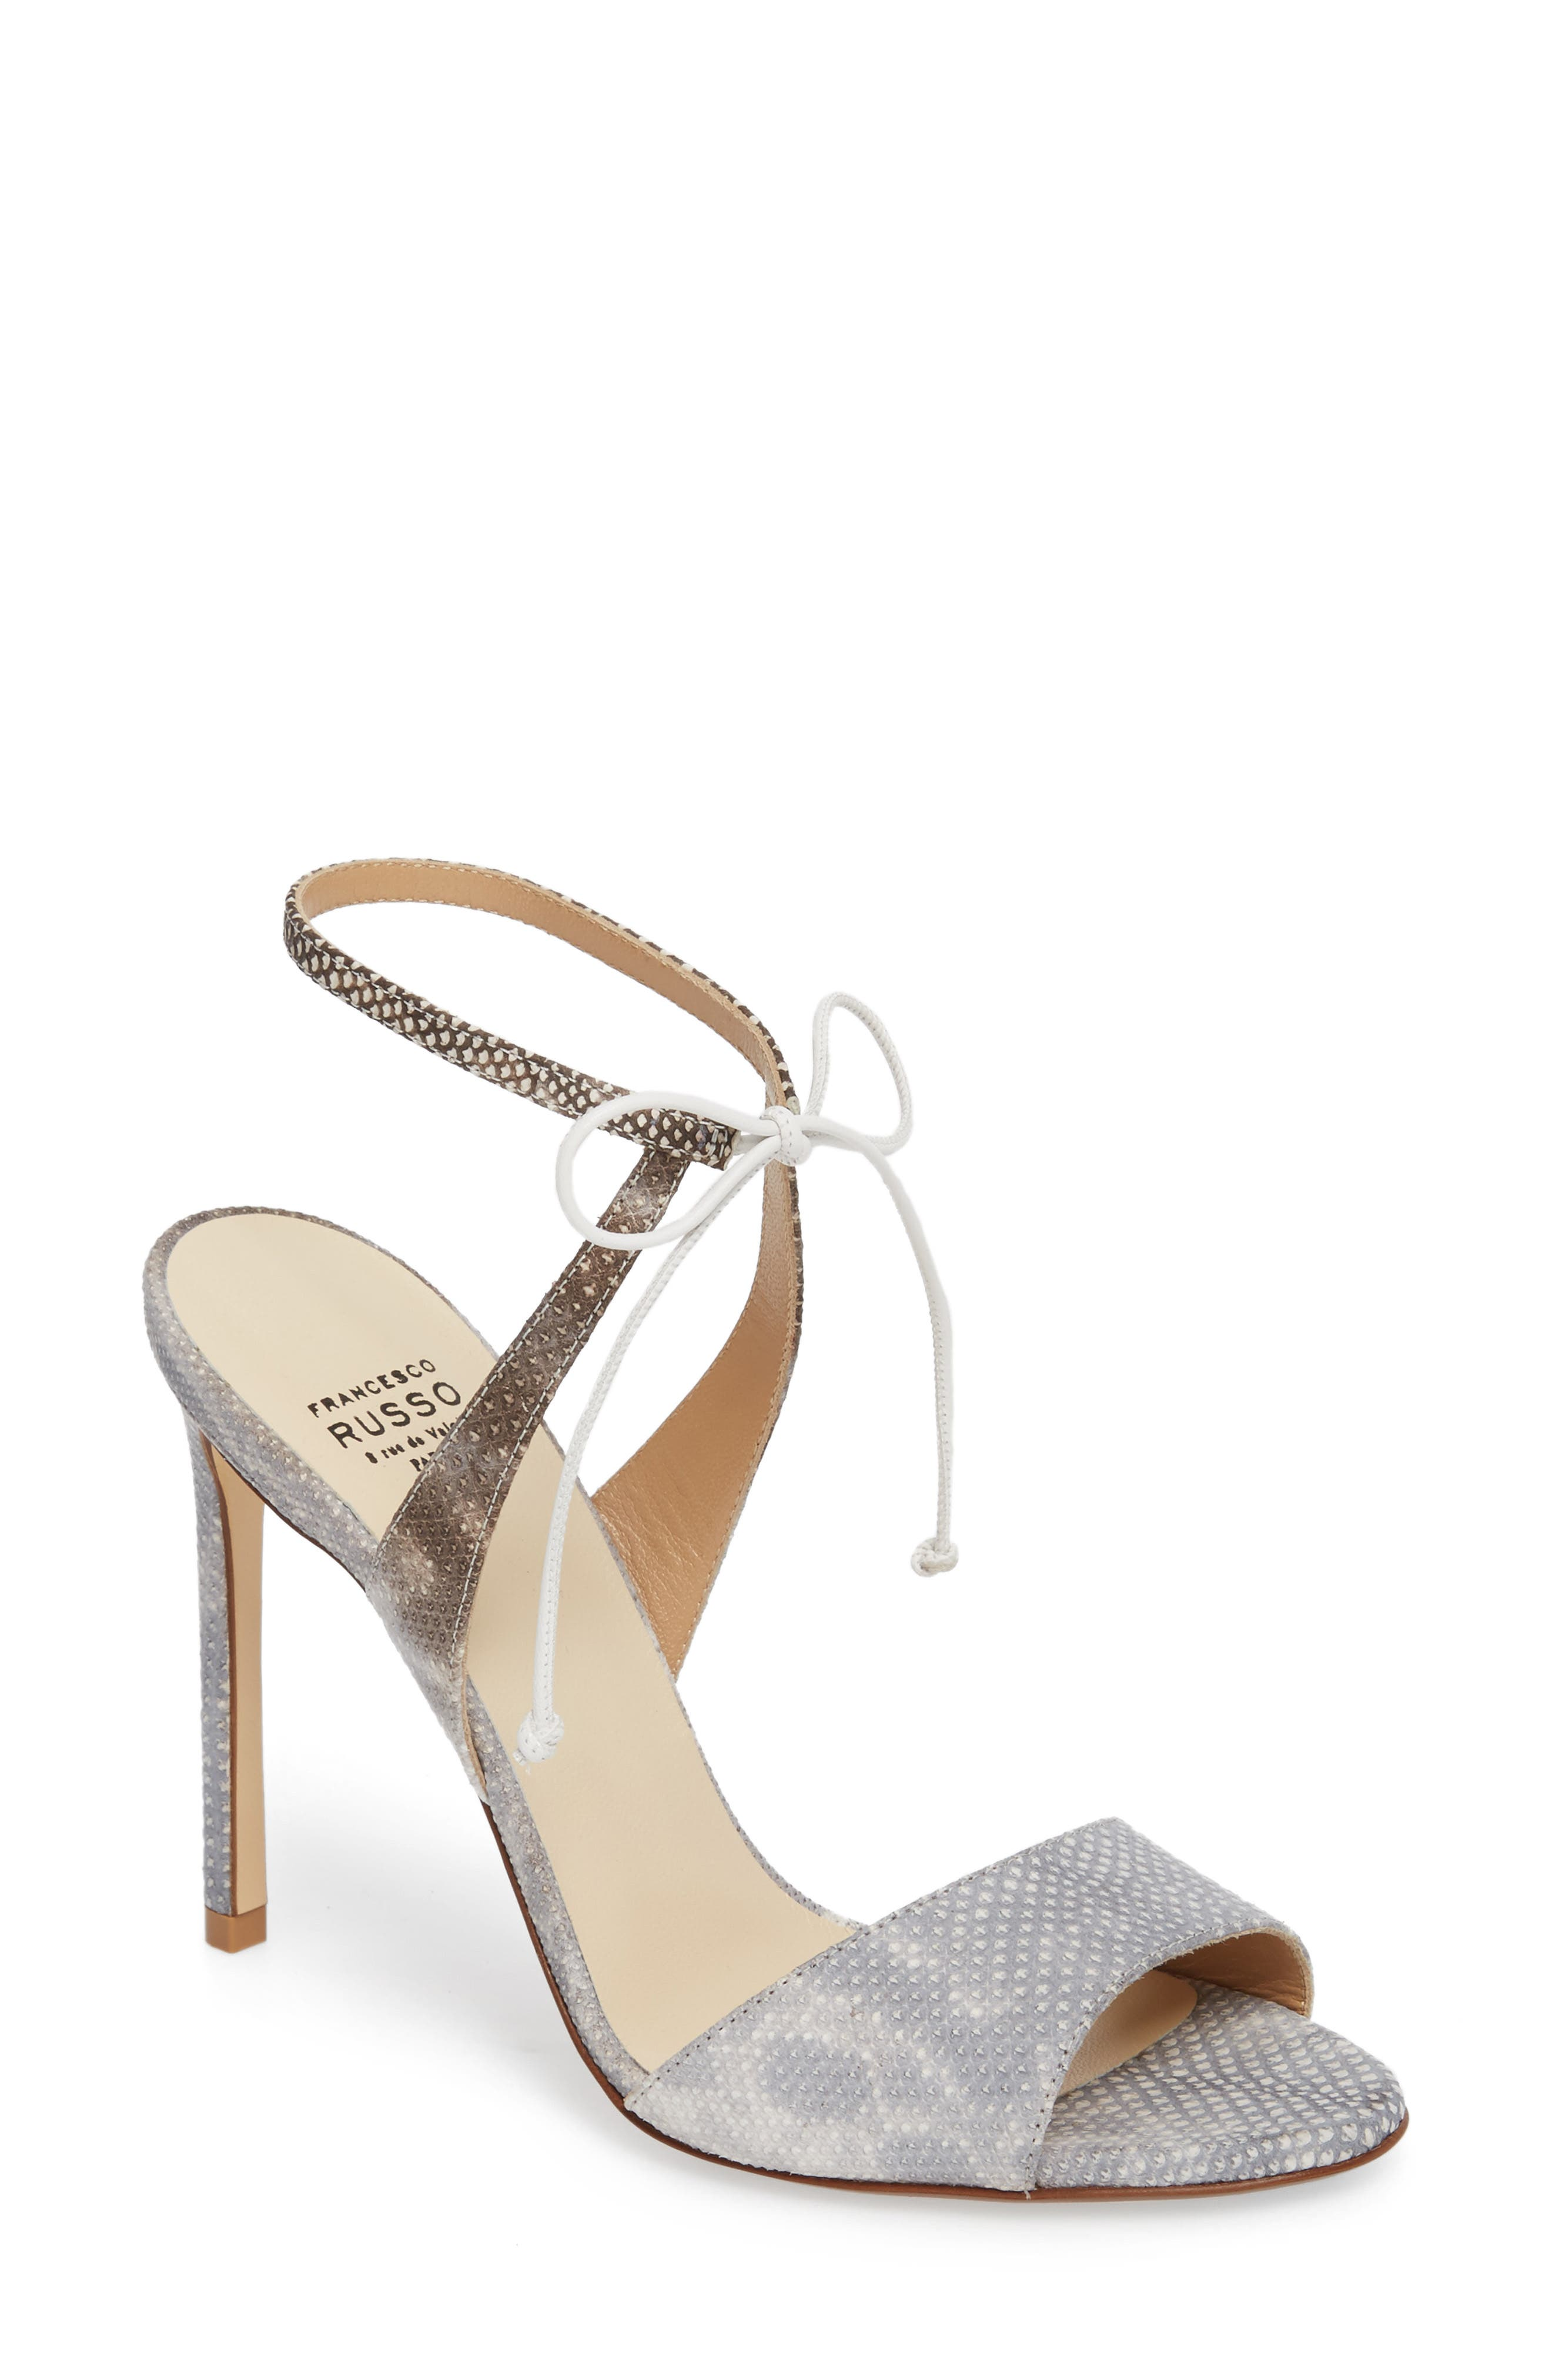 Ankle Strap Sandal,                             Main thumbnail 1, color,                             White